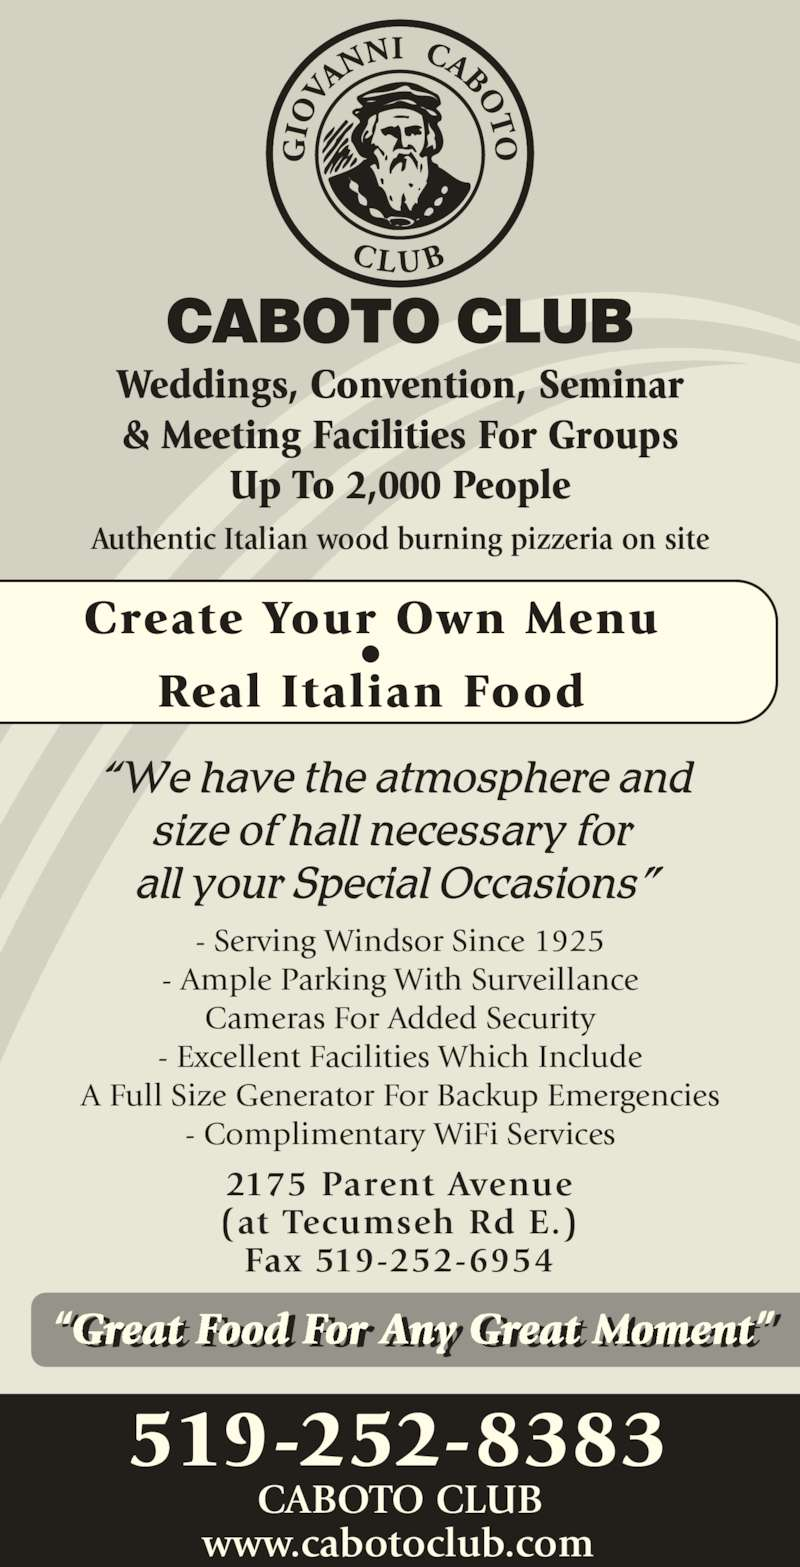 "Caboto Club (5192528383) - Display Ad - Create Your Own Menu • Real Italian Food Weddings, Convention, Seminar & Meeting Facilities For Groups Up To 2,000 People - Serving Windsor Since 1925 - Ample Parking With Surveillance Cameras For Added Security - Excellent Facilities Which Include A Full Size Generator For Backup Emergencies - Complimentary WiFi Services 519-252-8383 www.cabotoclub.com Authentic Italian wood burning pizzeria on site 2175 Parent Avenue (at Tecumseh Rd E.) Fax 519-252-6954 ""Great Food For Any Great Moment""r t  r  r t t CABOTO CLUB"